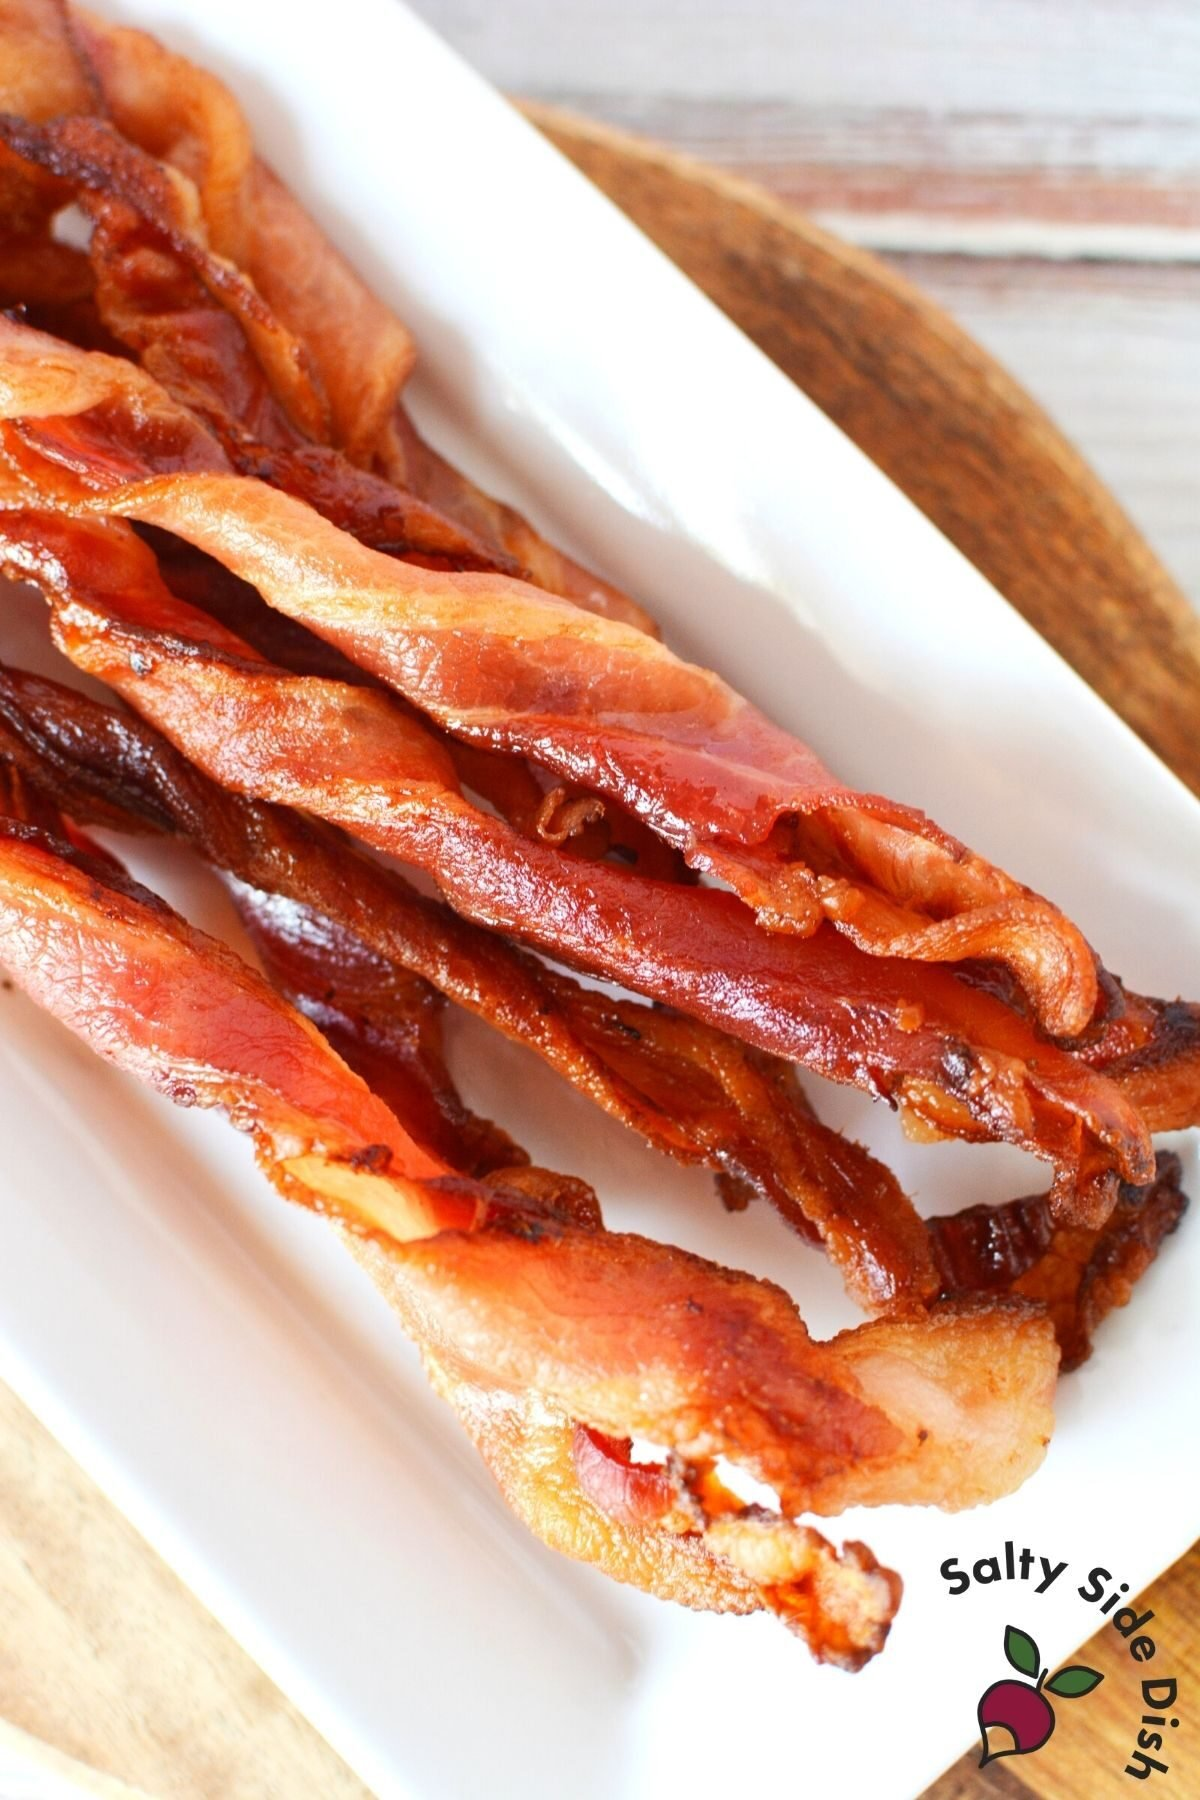 pile of bacon straws on a plate.